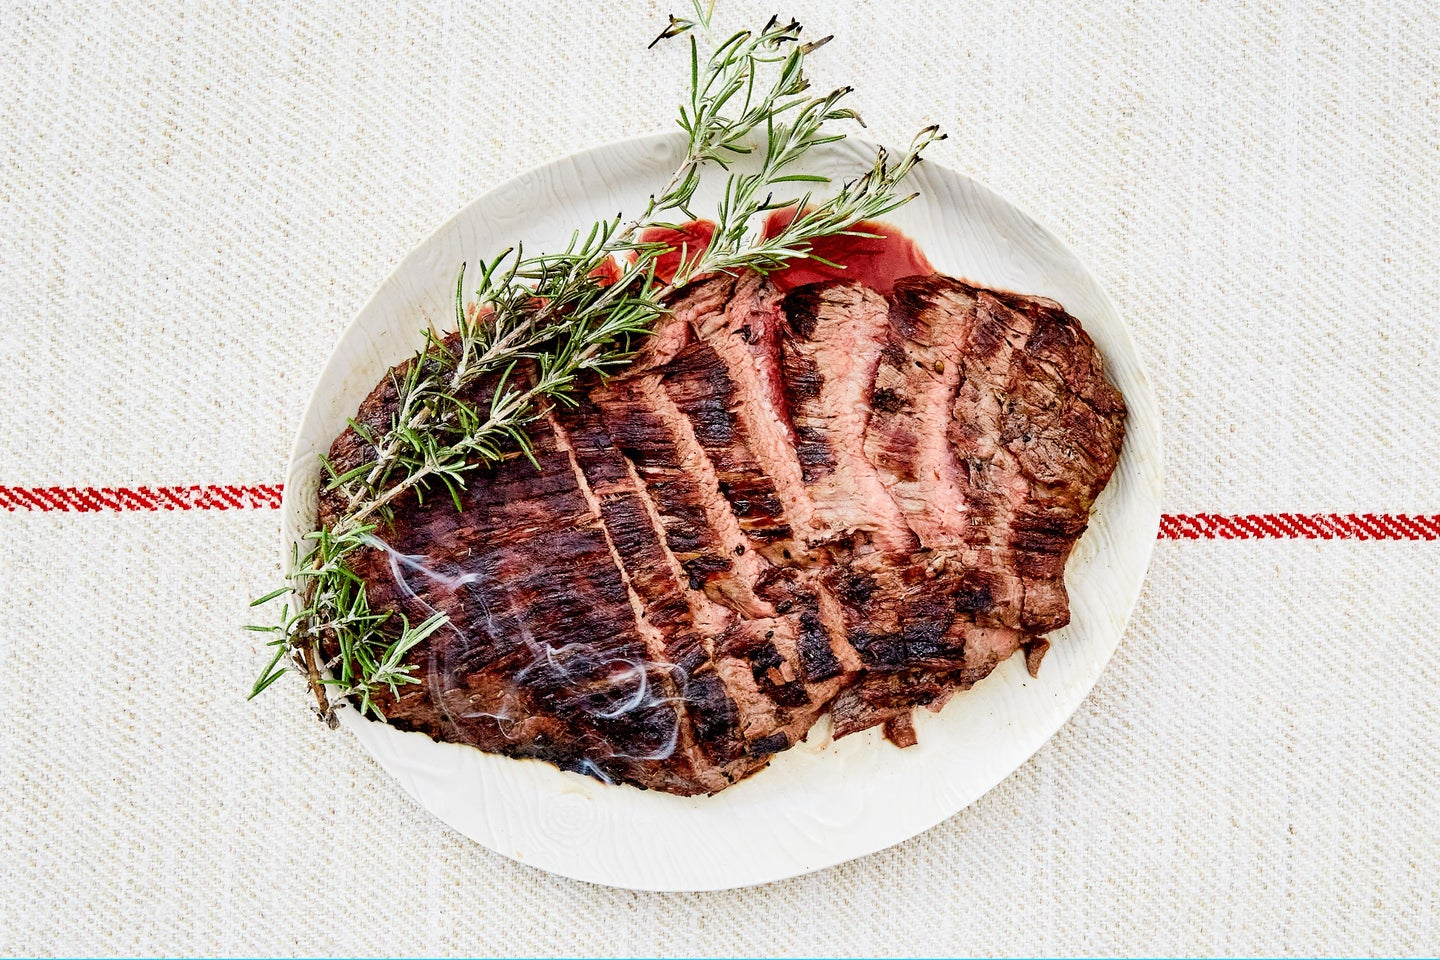 Flank Steak marinated and grilled